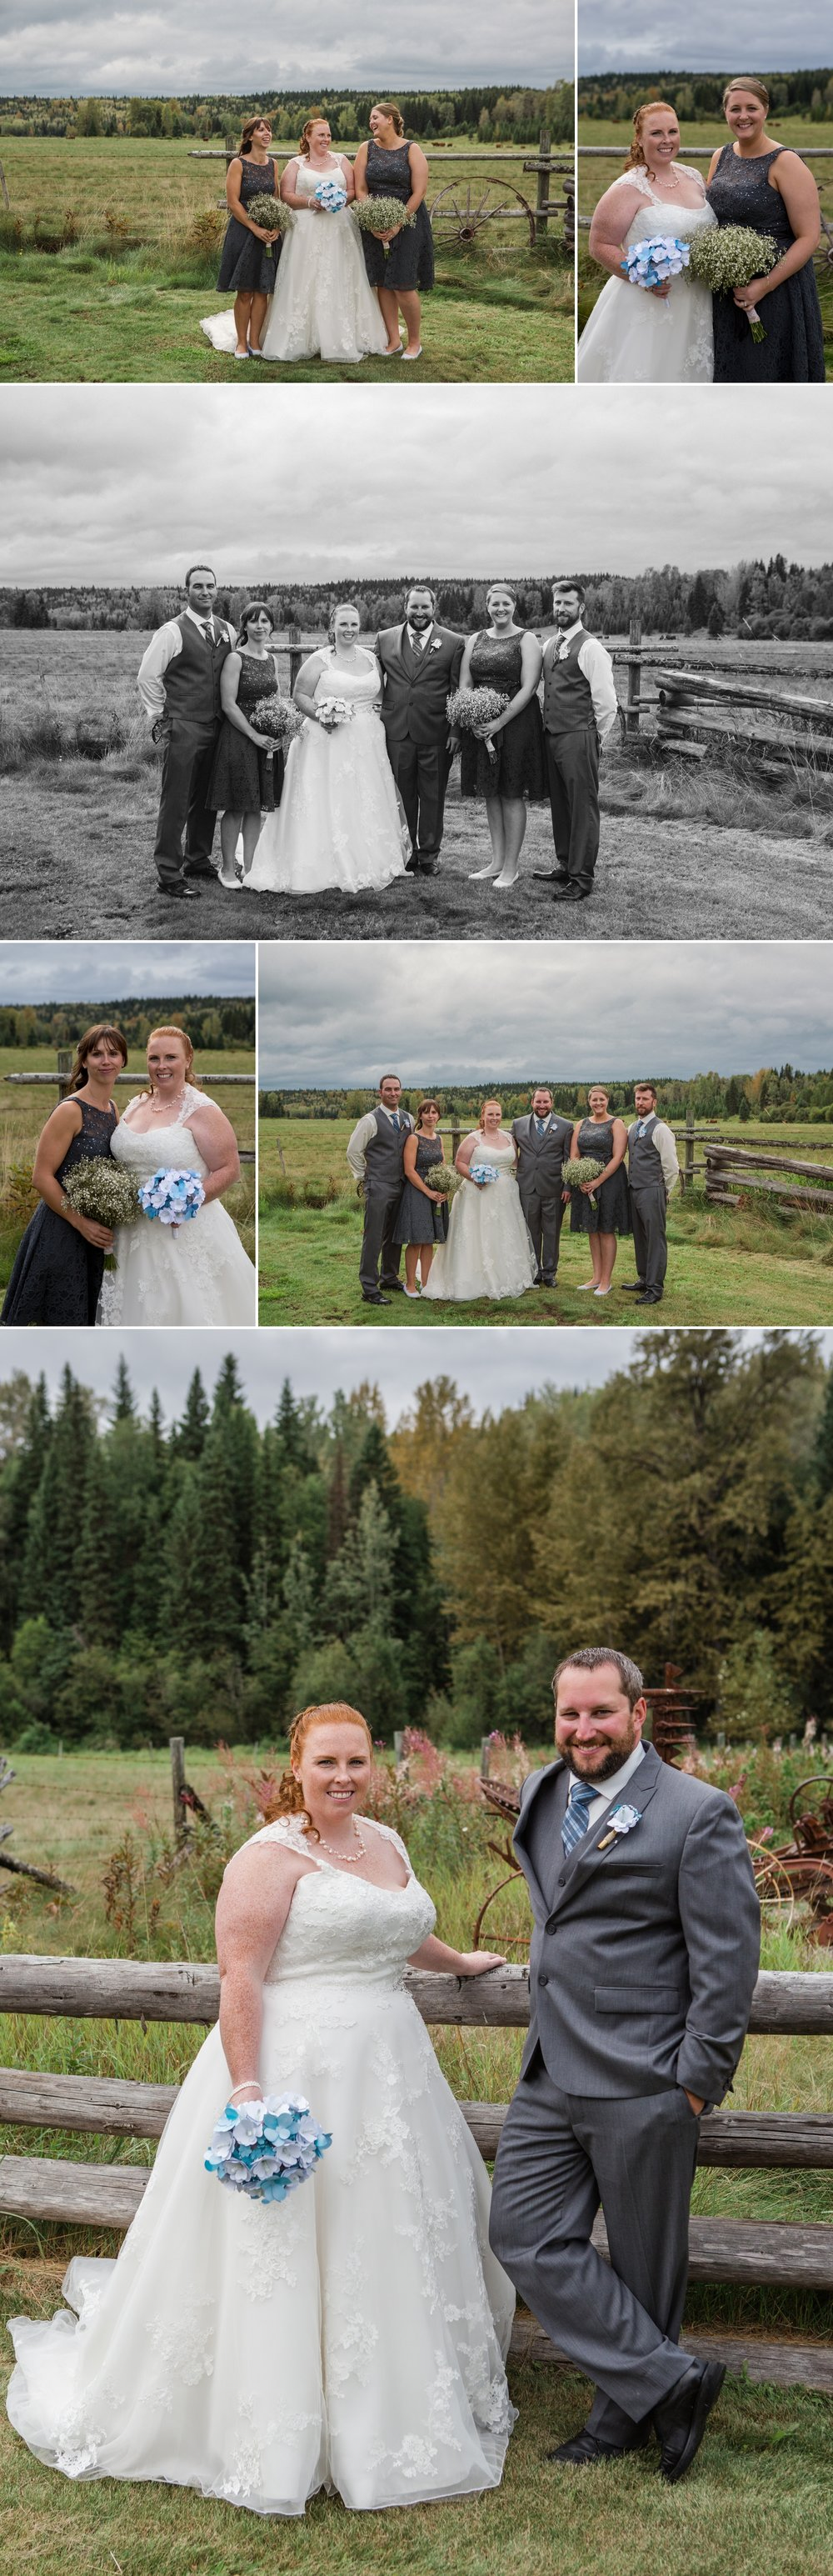 Rob and Kyla - wedding blog 9.jpg